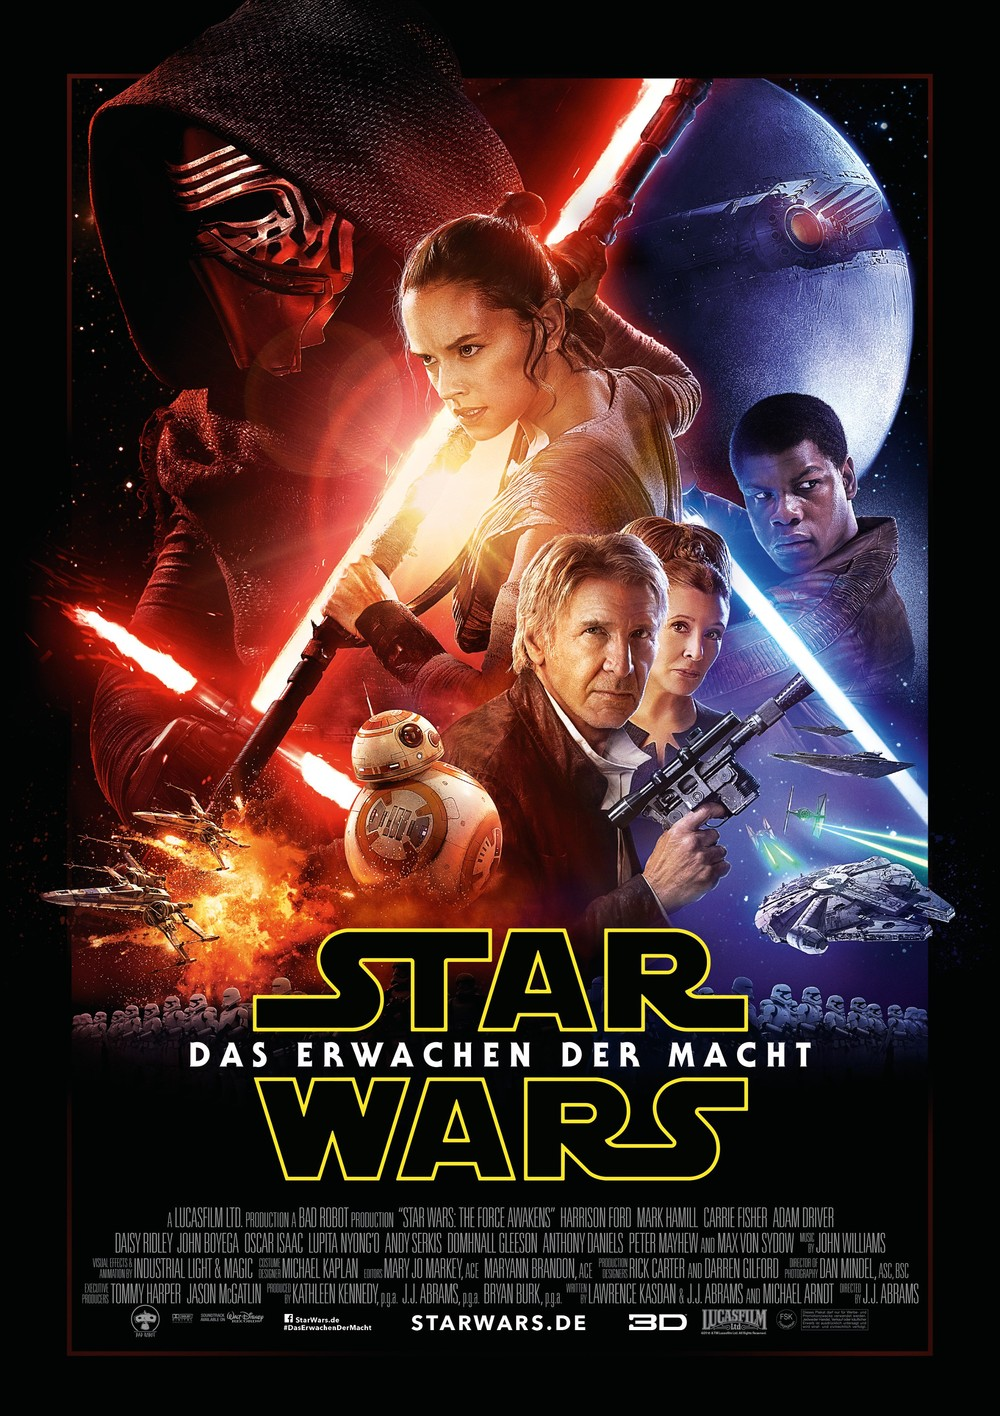 Star wars dvd release date in Brisbane